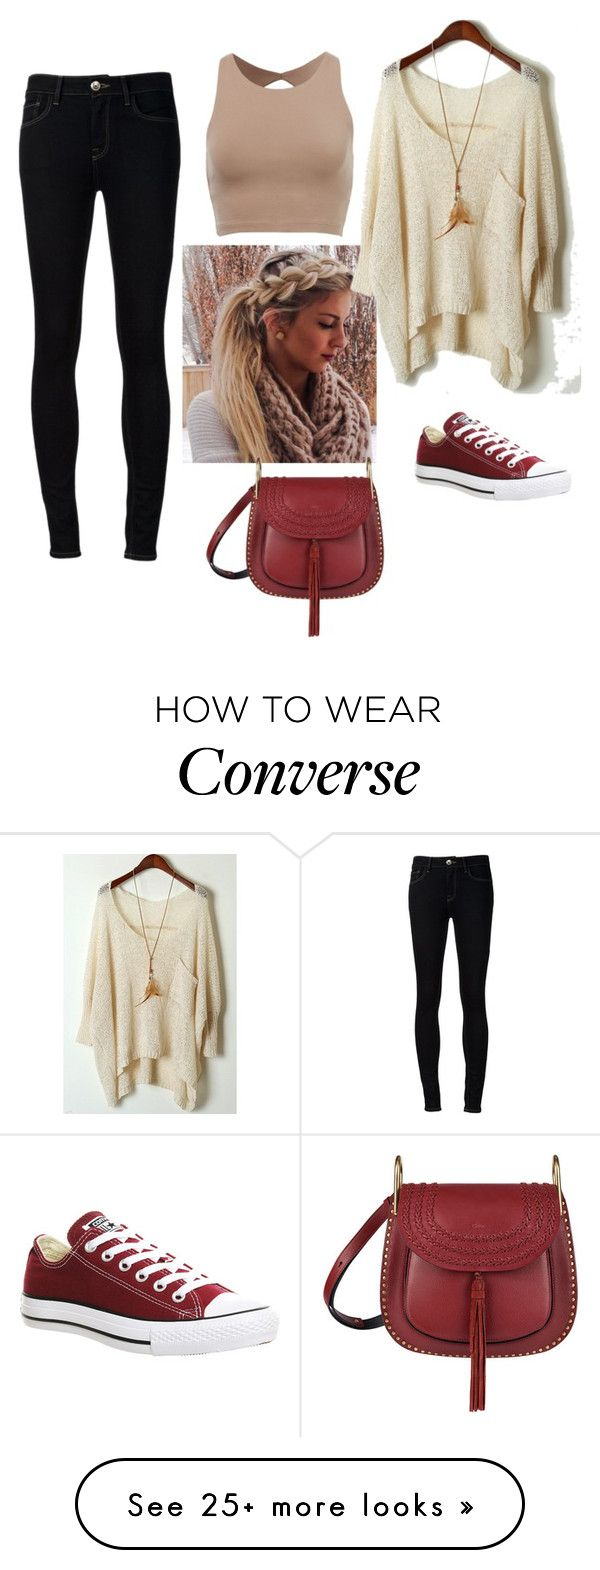 """Untitled #162"" by jopa123 on Polyvore featuring Ström, Converse and Chloé"